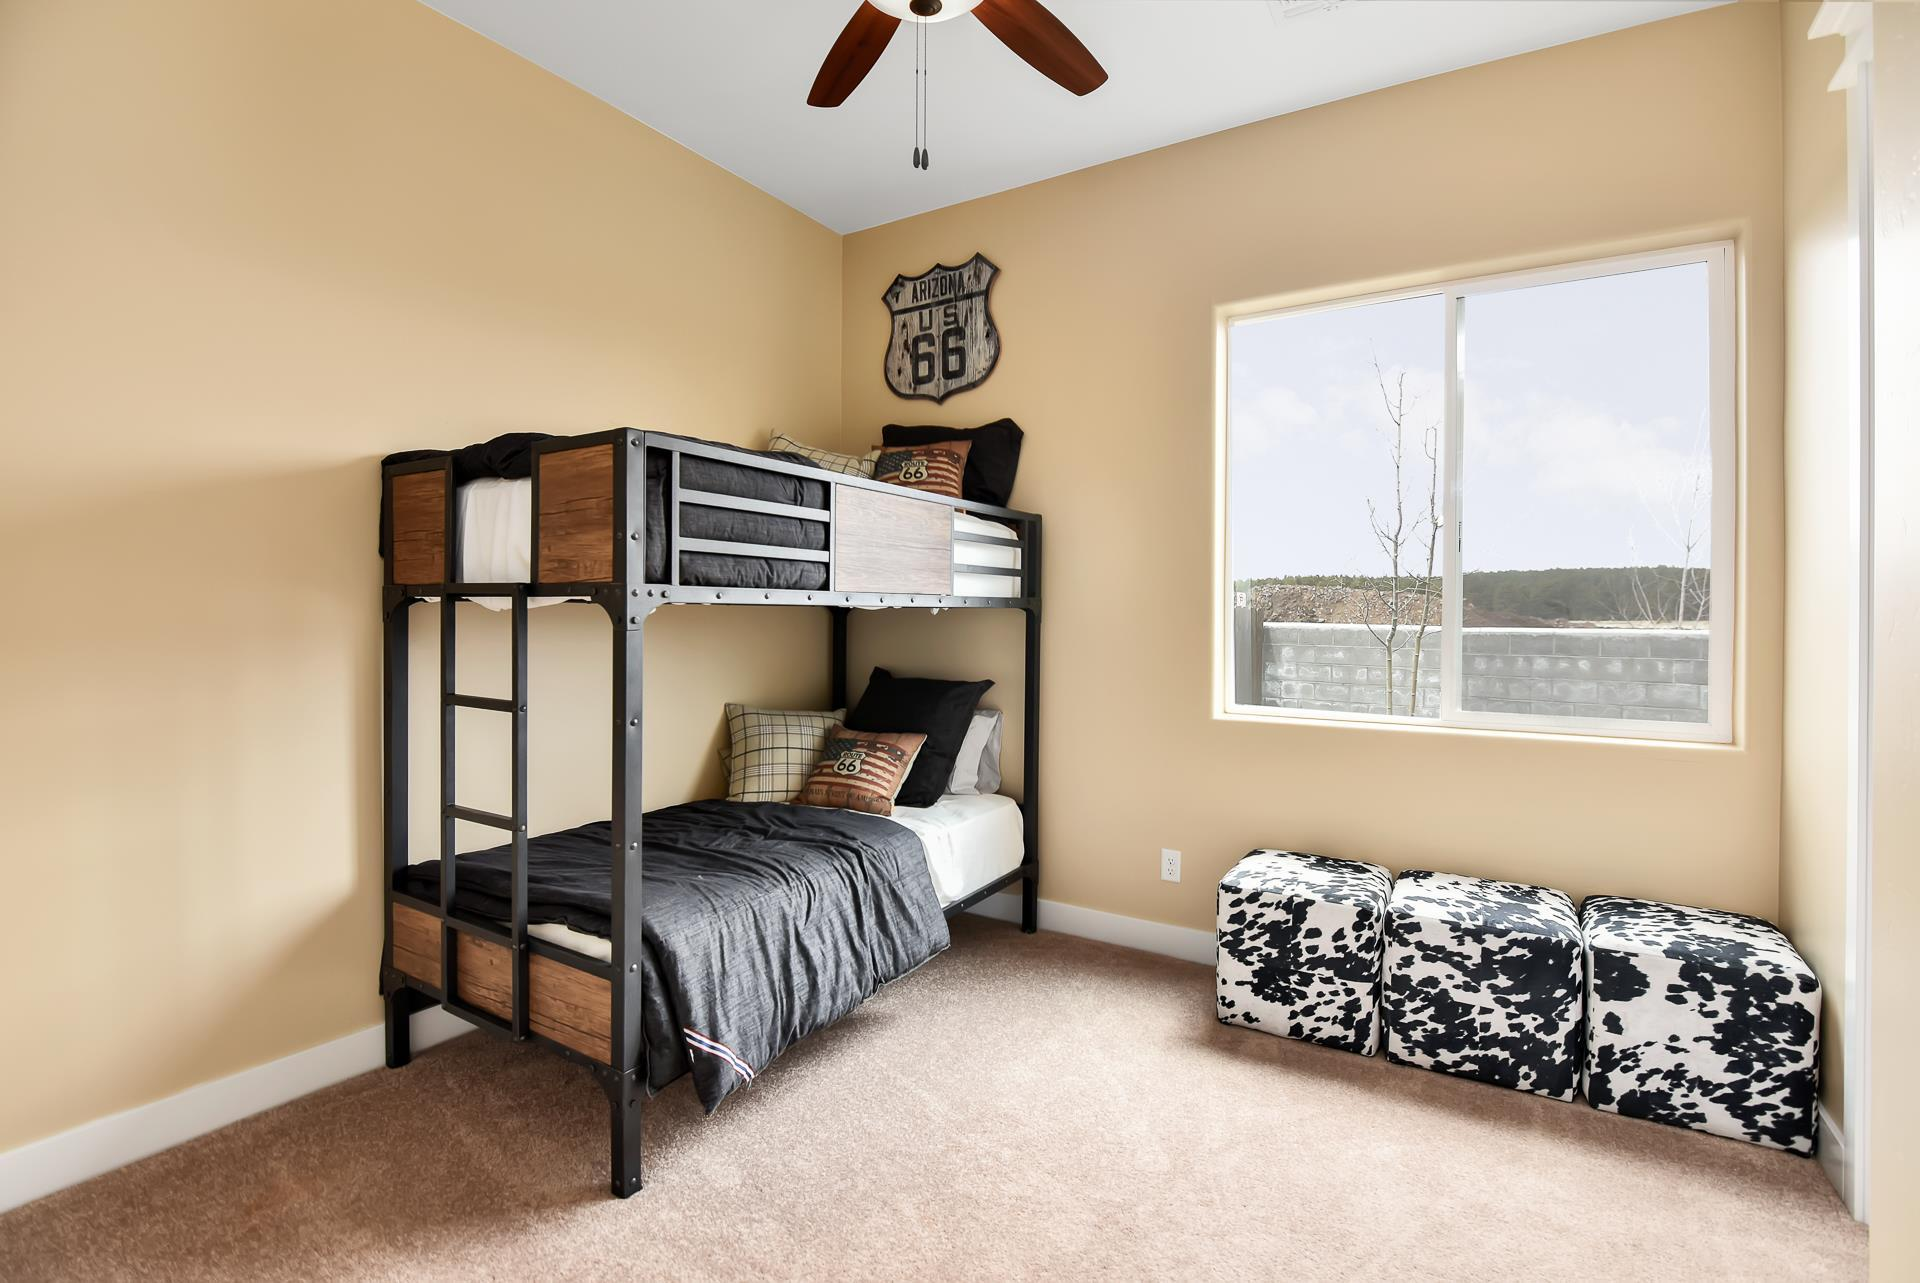 Bedroom featured in the Flagstaff Meadows Plan 1896 By Capstone Homes in Flagstaff, AZ